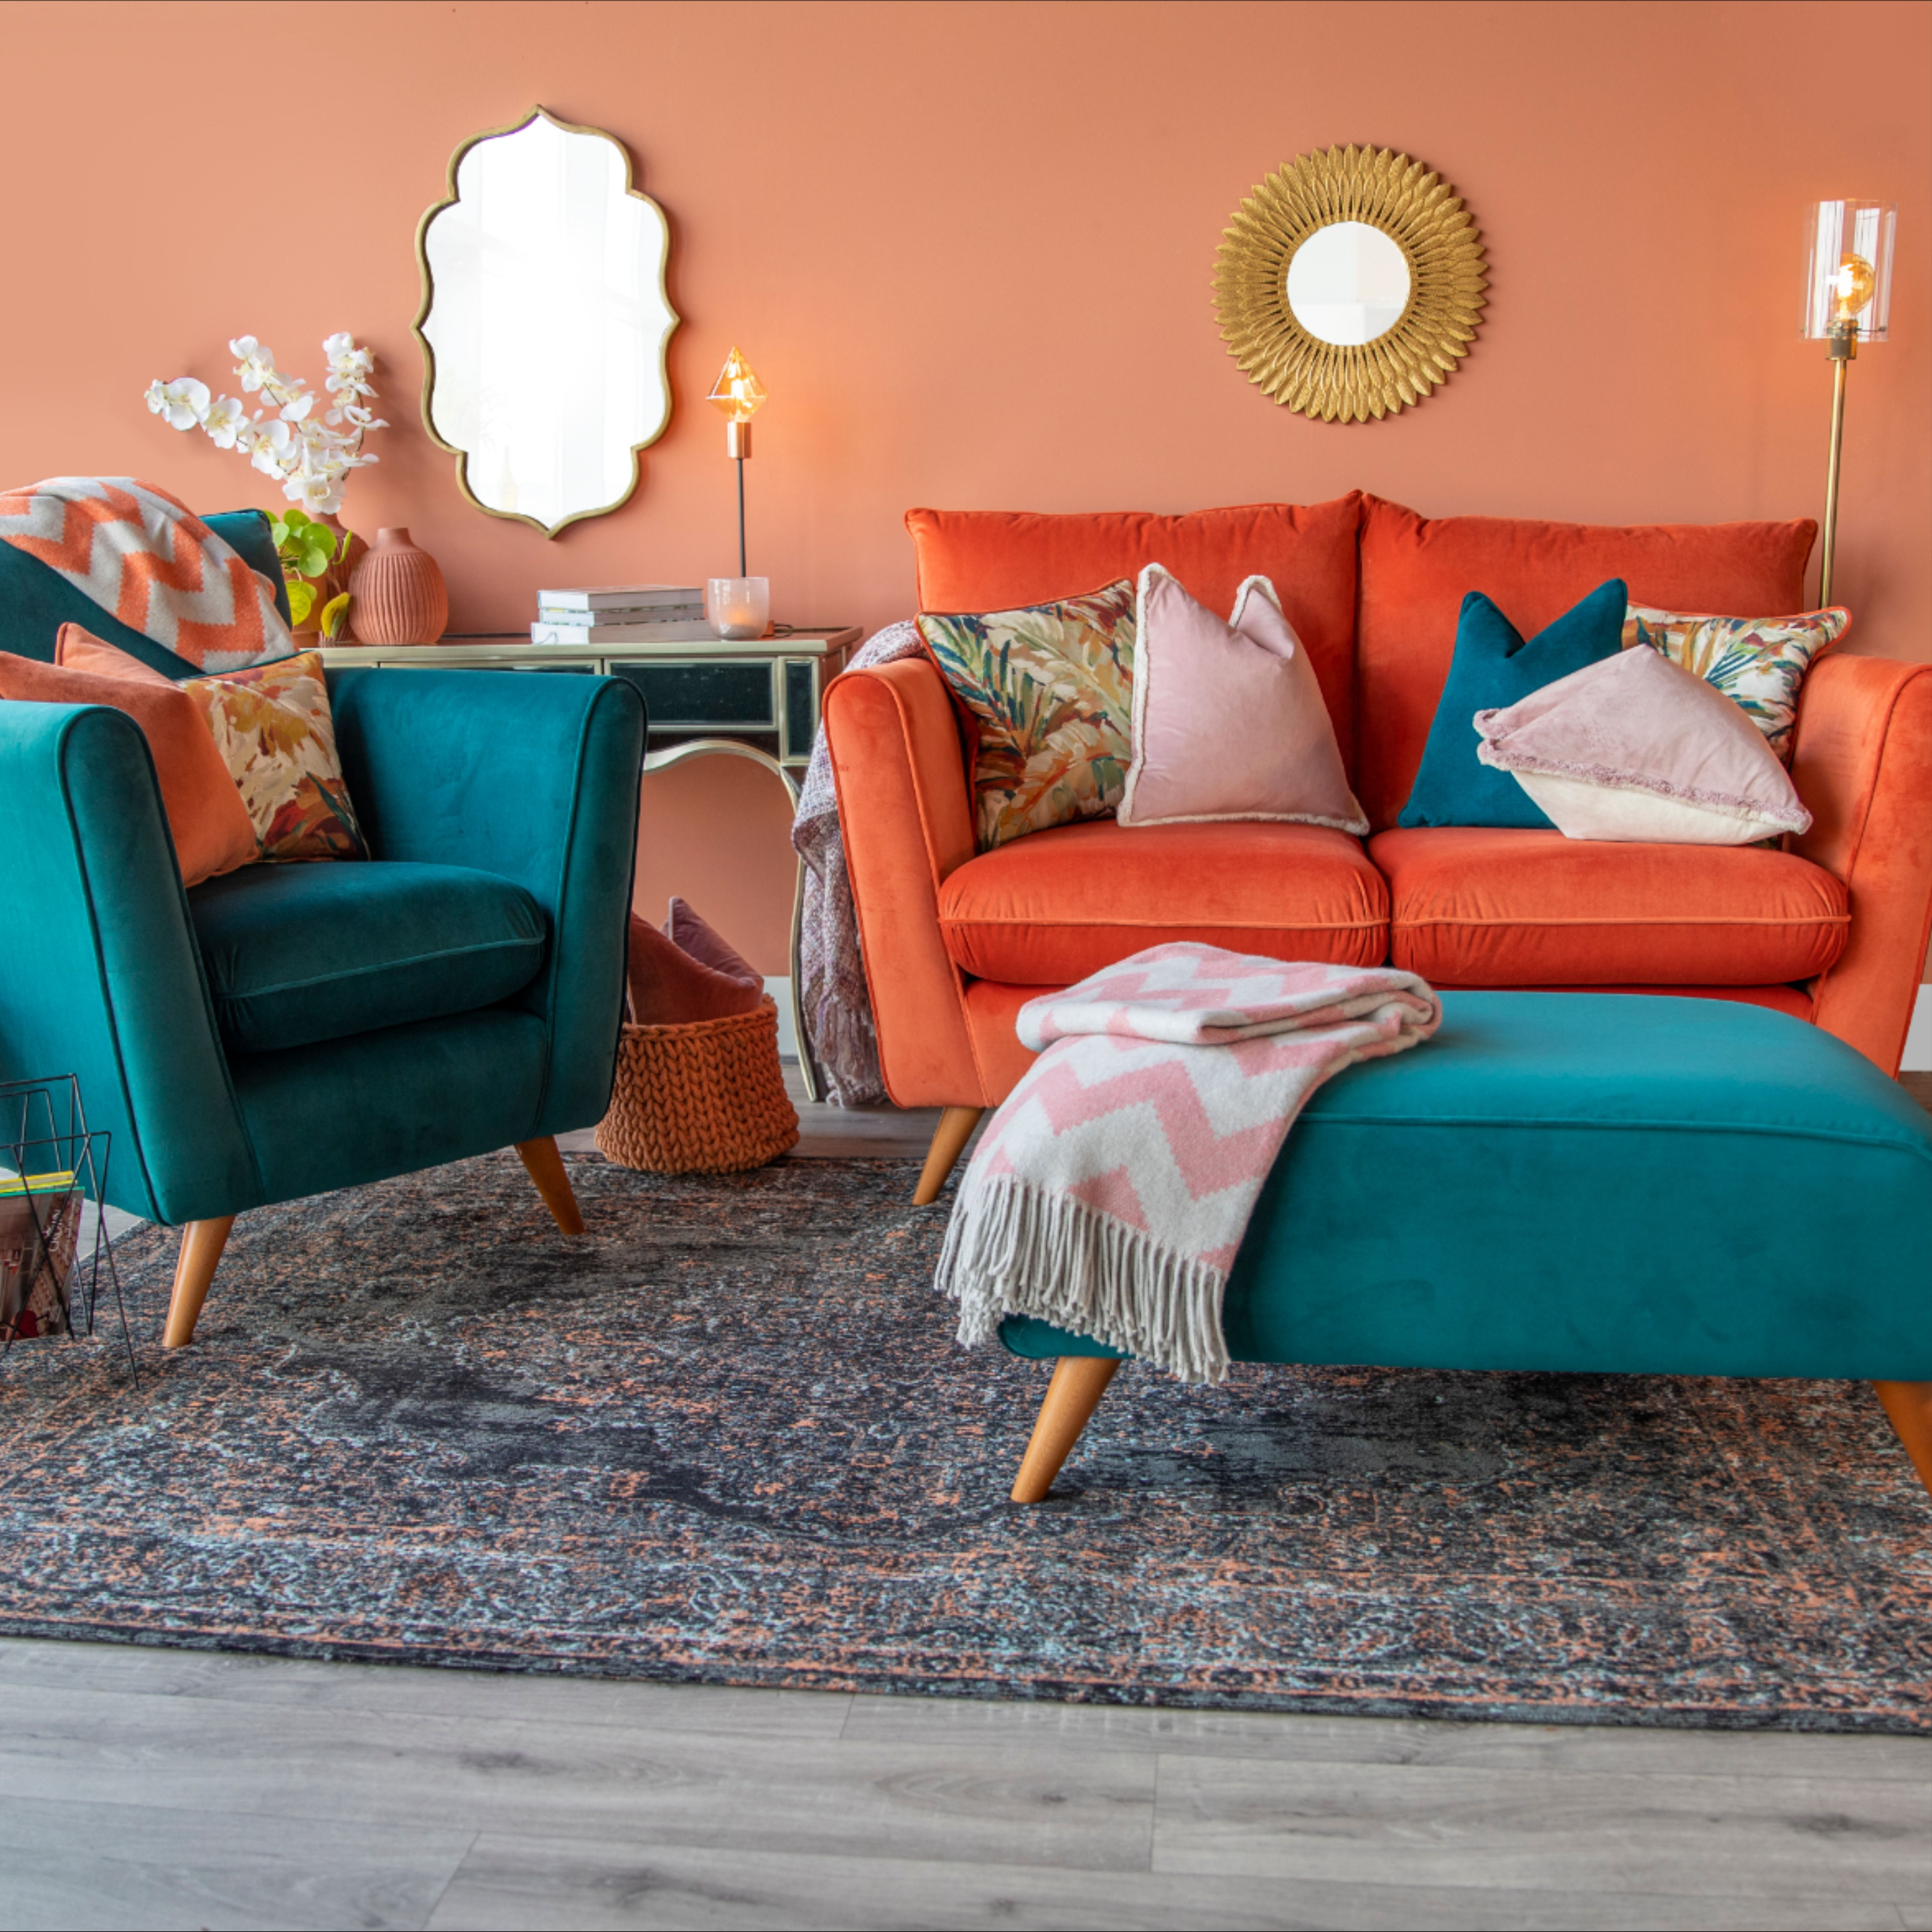 10 Best Teal And Brown Living Room Accessories